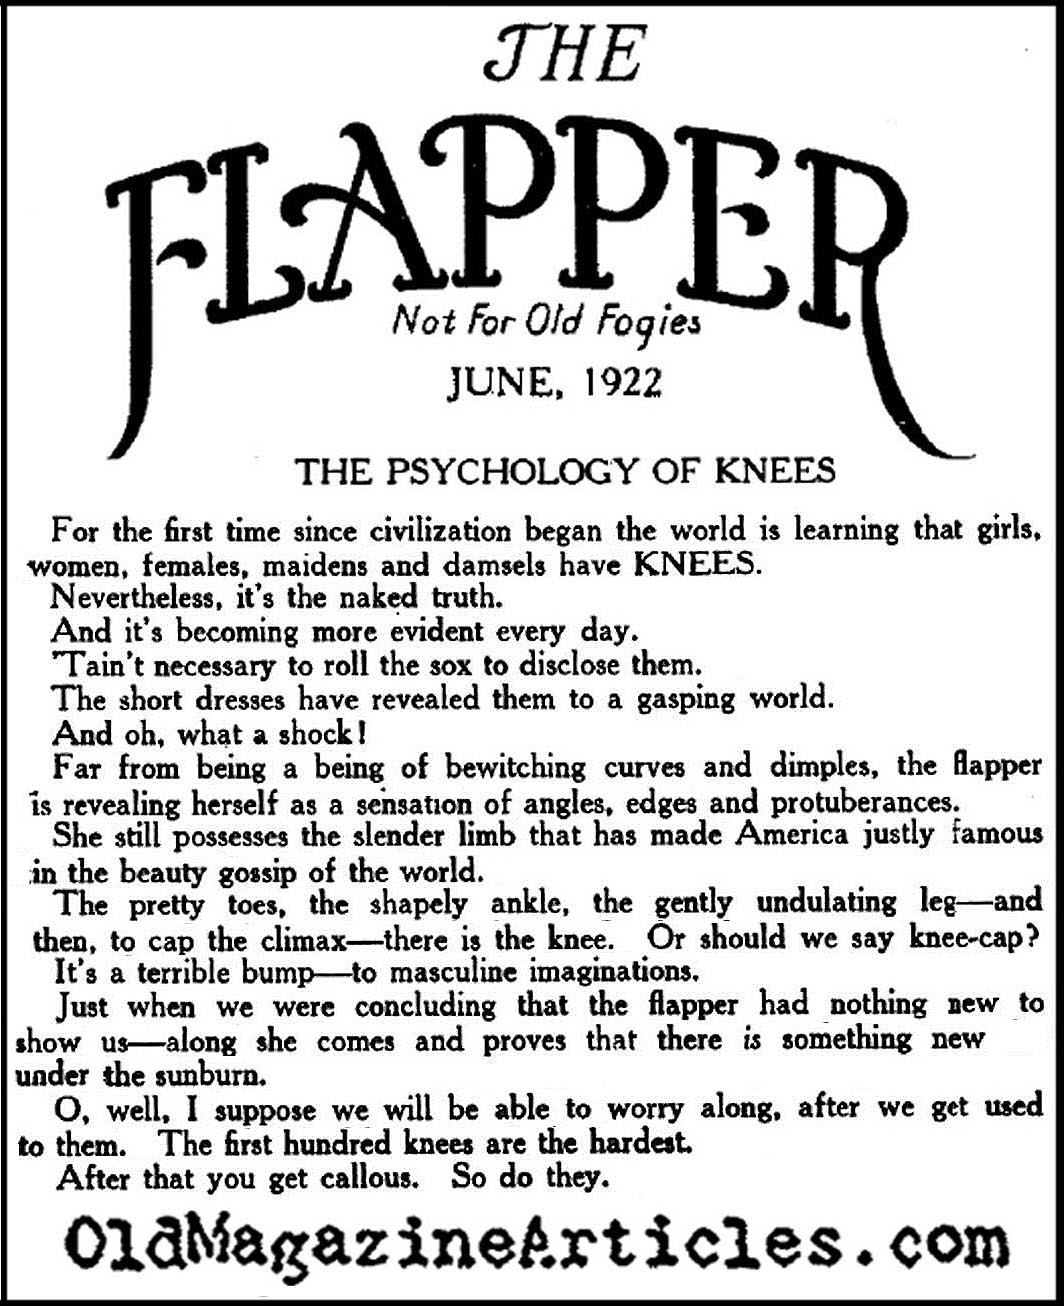 Ode to Feminine Knees (Flapper Magazine, 1922)